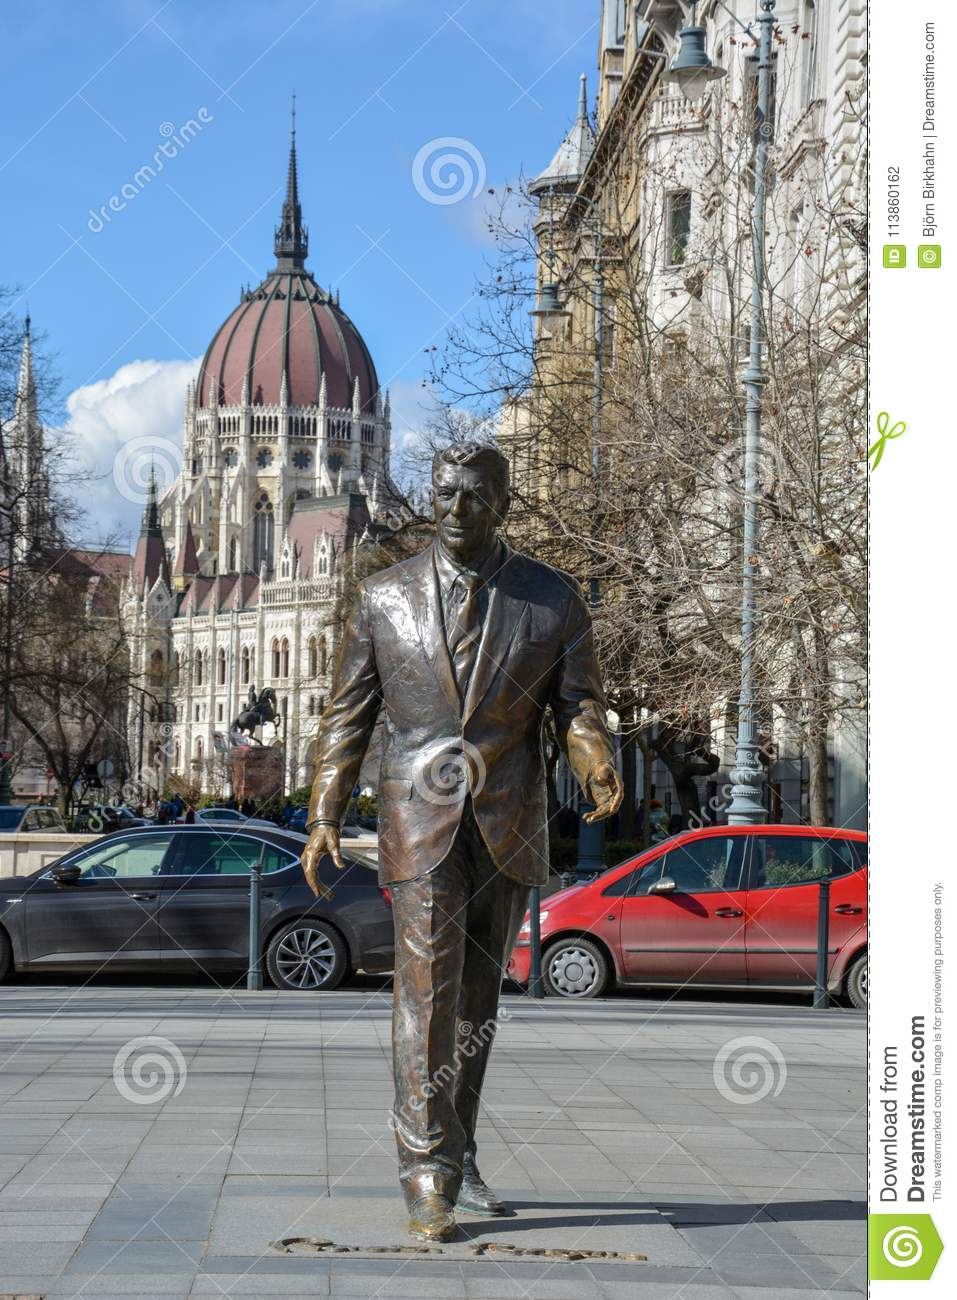 Ronald Reagan statue with the Budapest parliament in the background